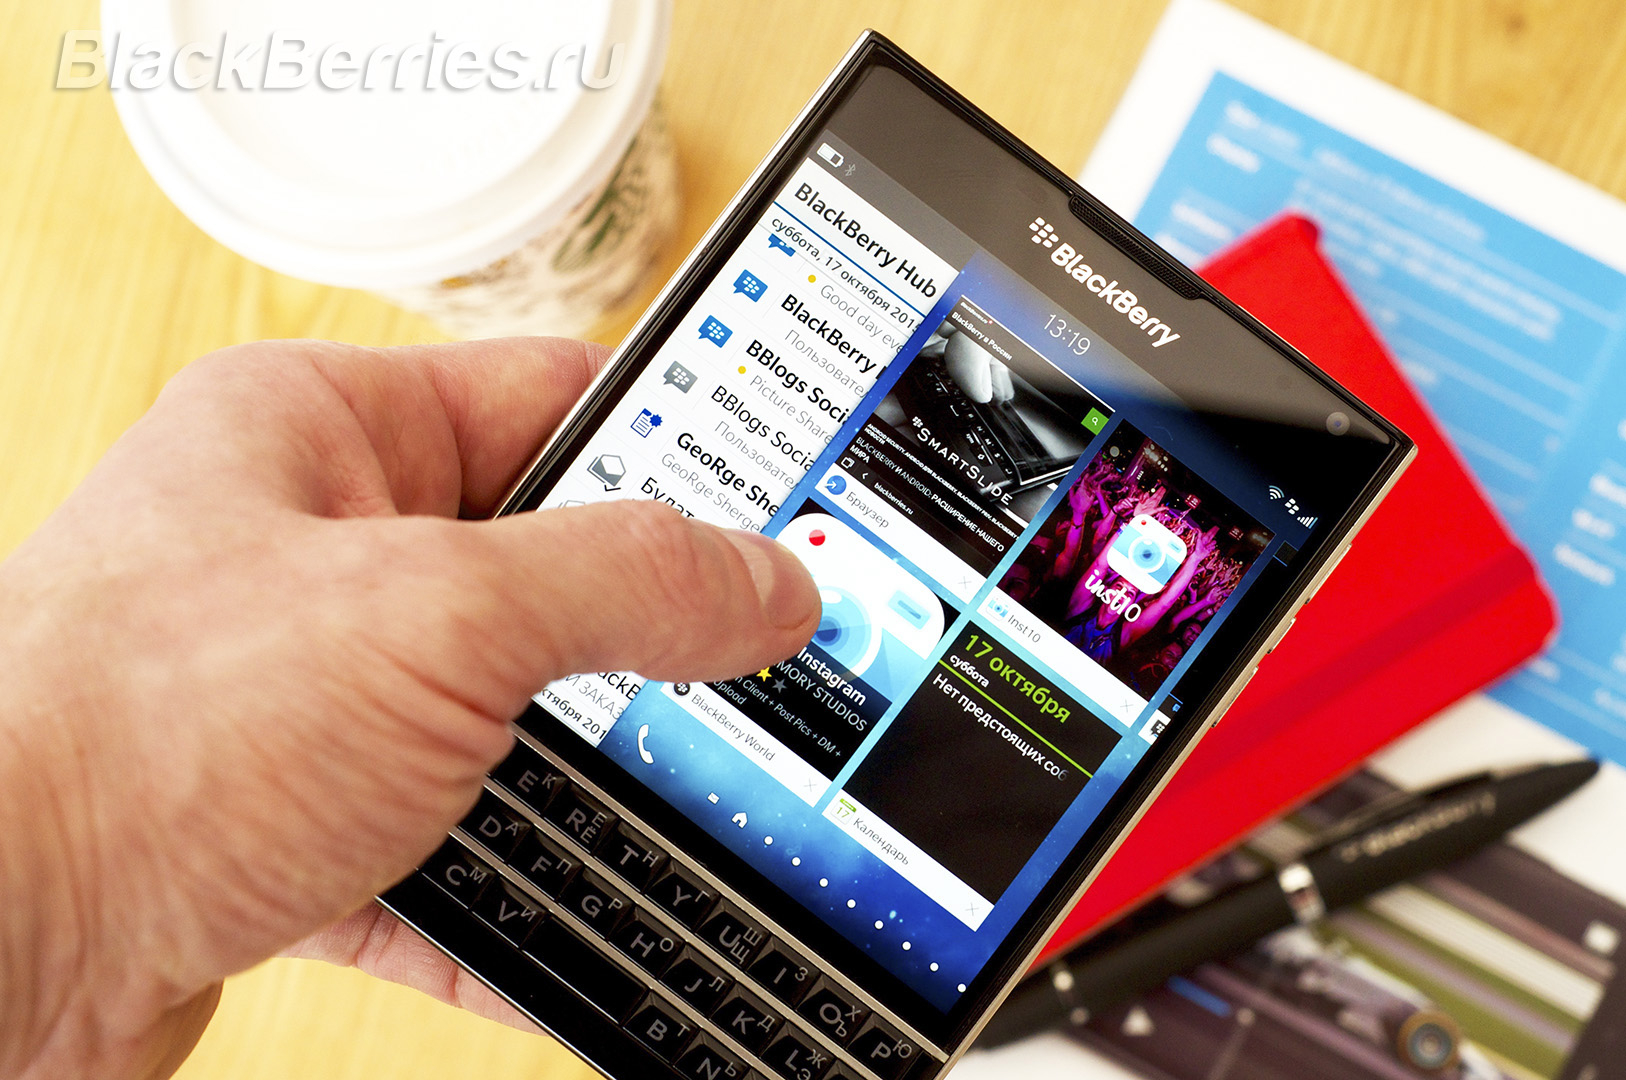 BlackBerry-Passport-App-Review-2-02